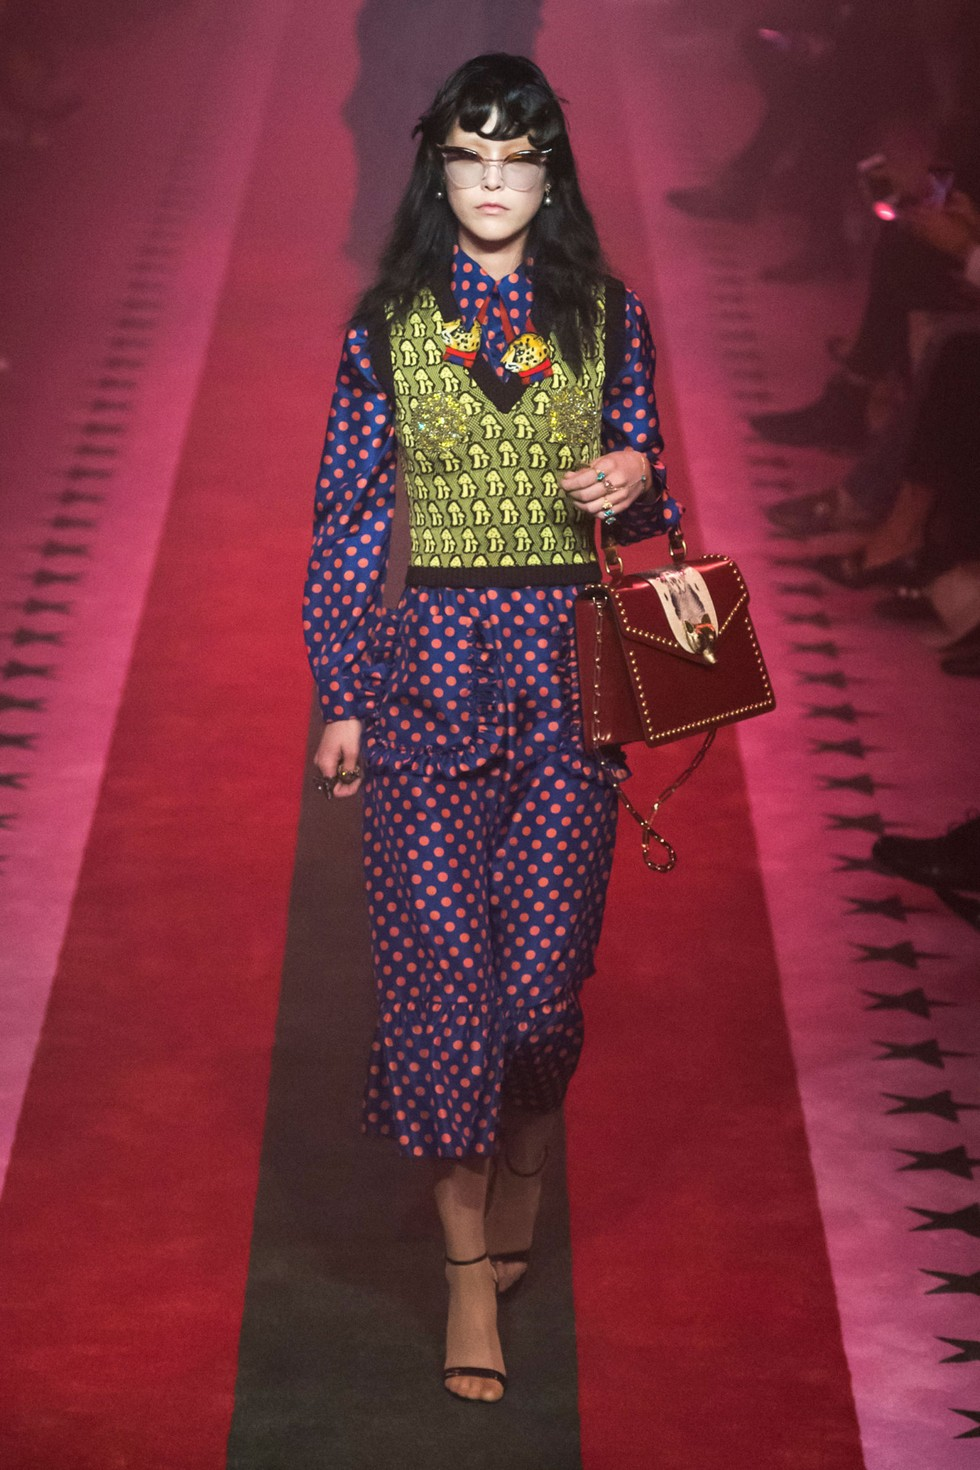 Gucci italian luxury fashion brand Milan Design Week 2016 milan fashion spring summer 2017 Milan Fashion Spring Summer 2017 – day one best moments Gucci 3